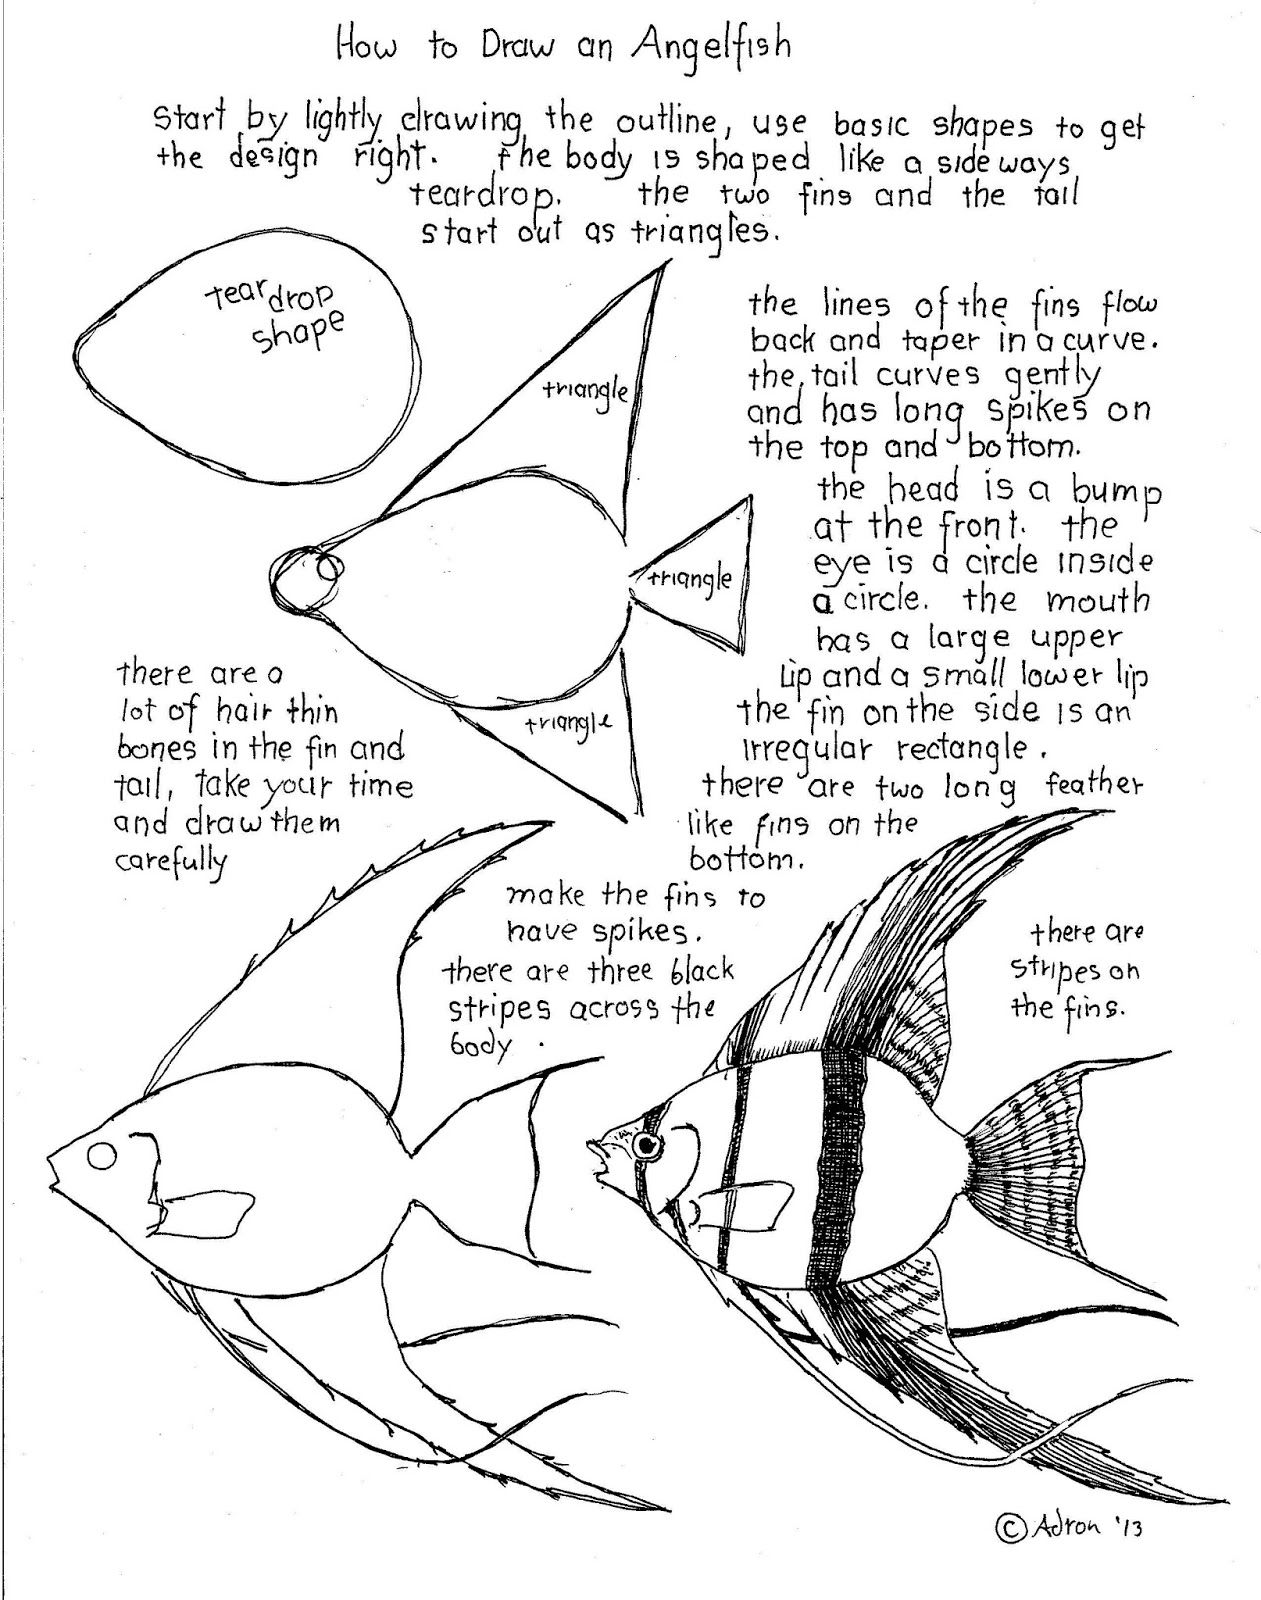 worksheet Drawing Worksheets how to draw worksheets for the young artist an angelfish worksheet